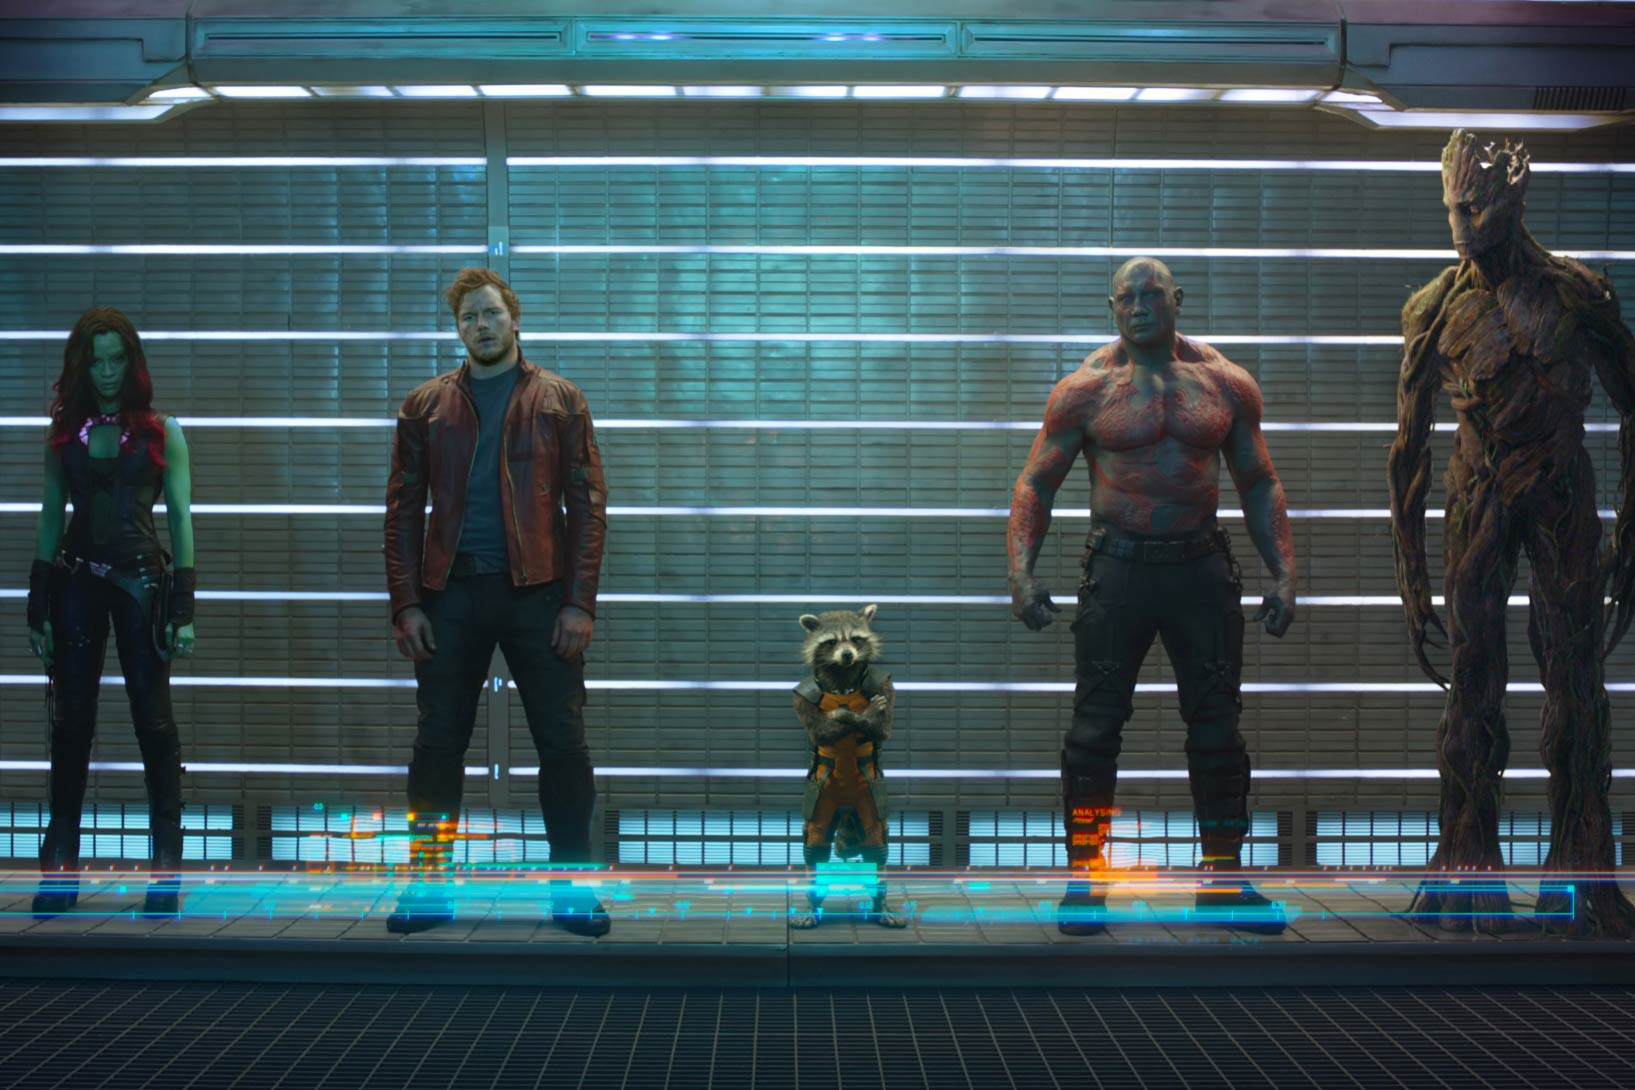 1. Guardians of the Galaxy - $332,862,030